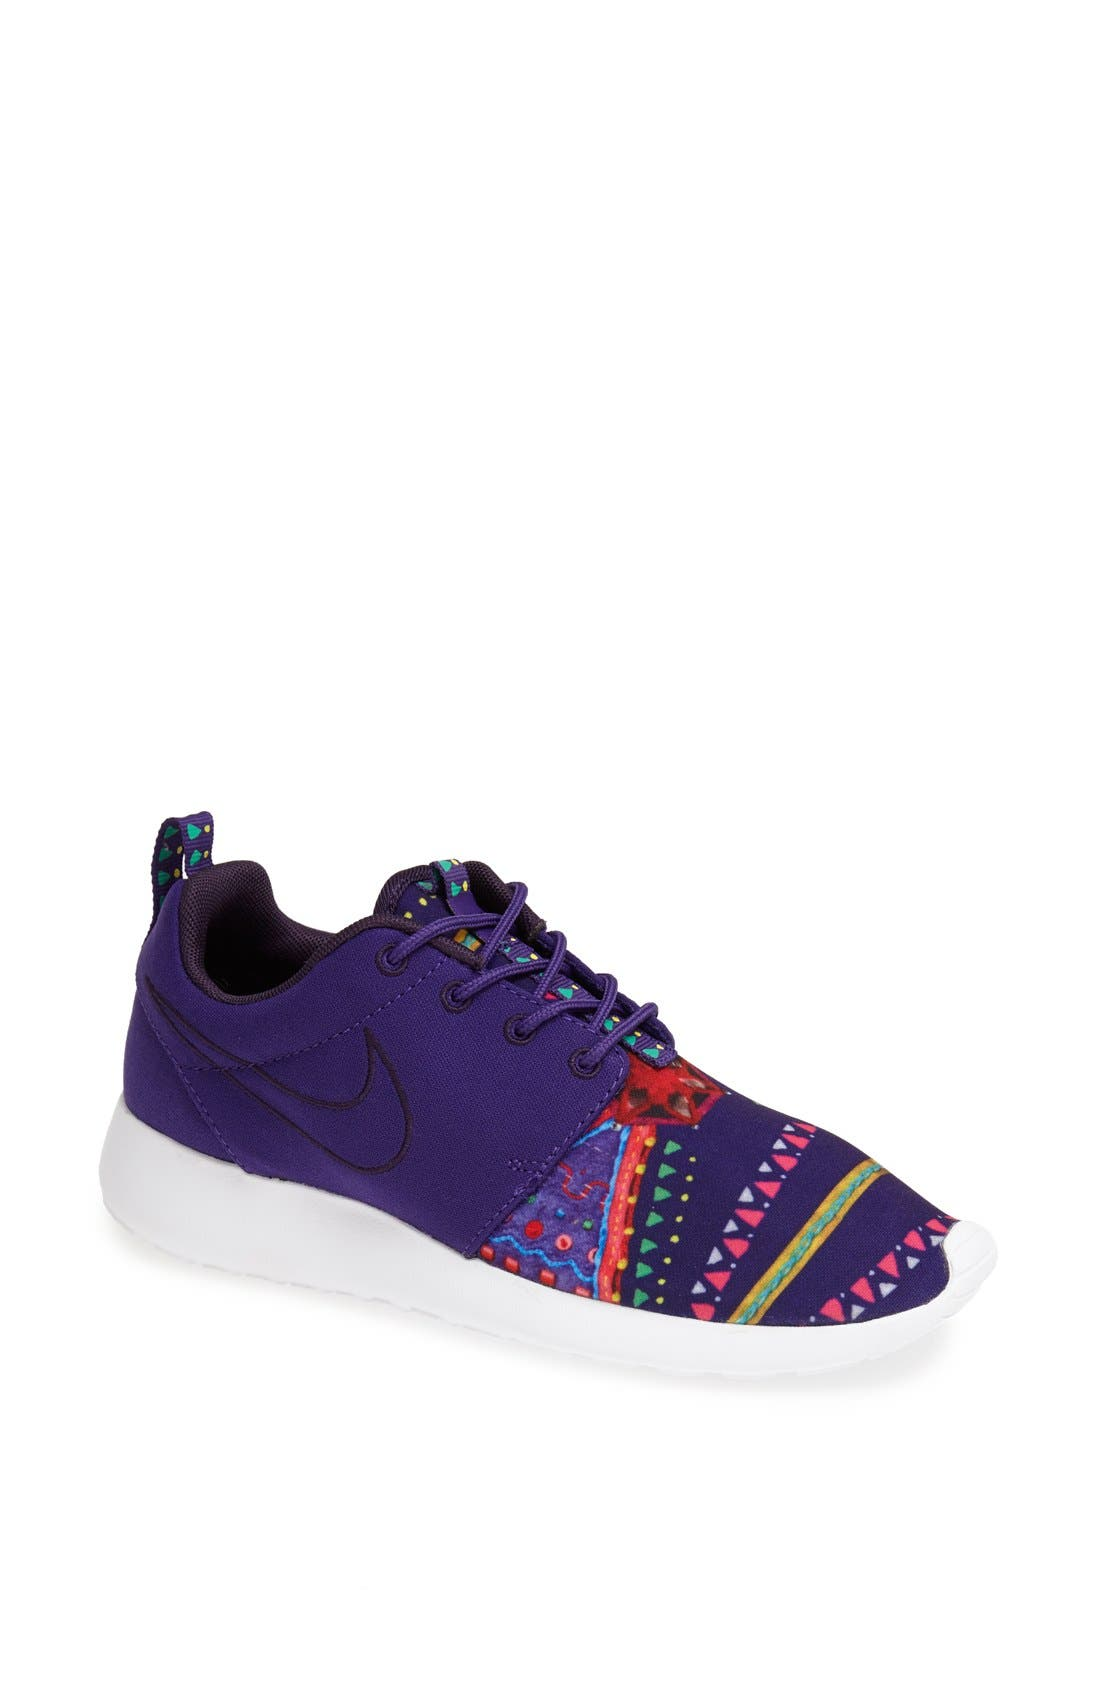 Main Image - Nike 'Roshe Run MP QS' Print Sneaker (Women)